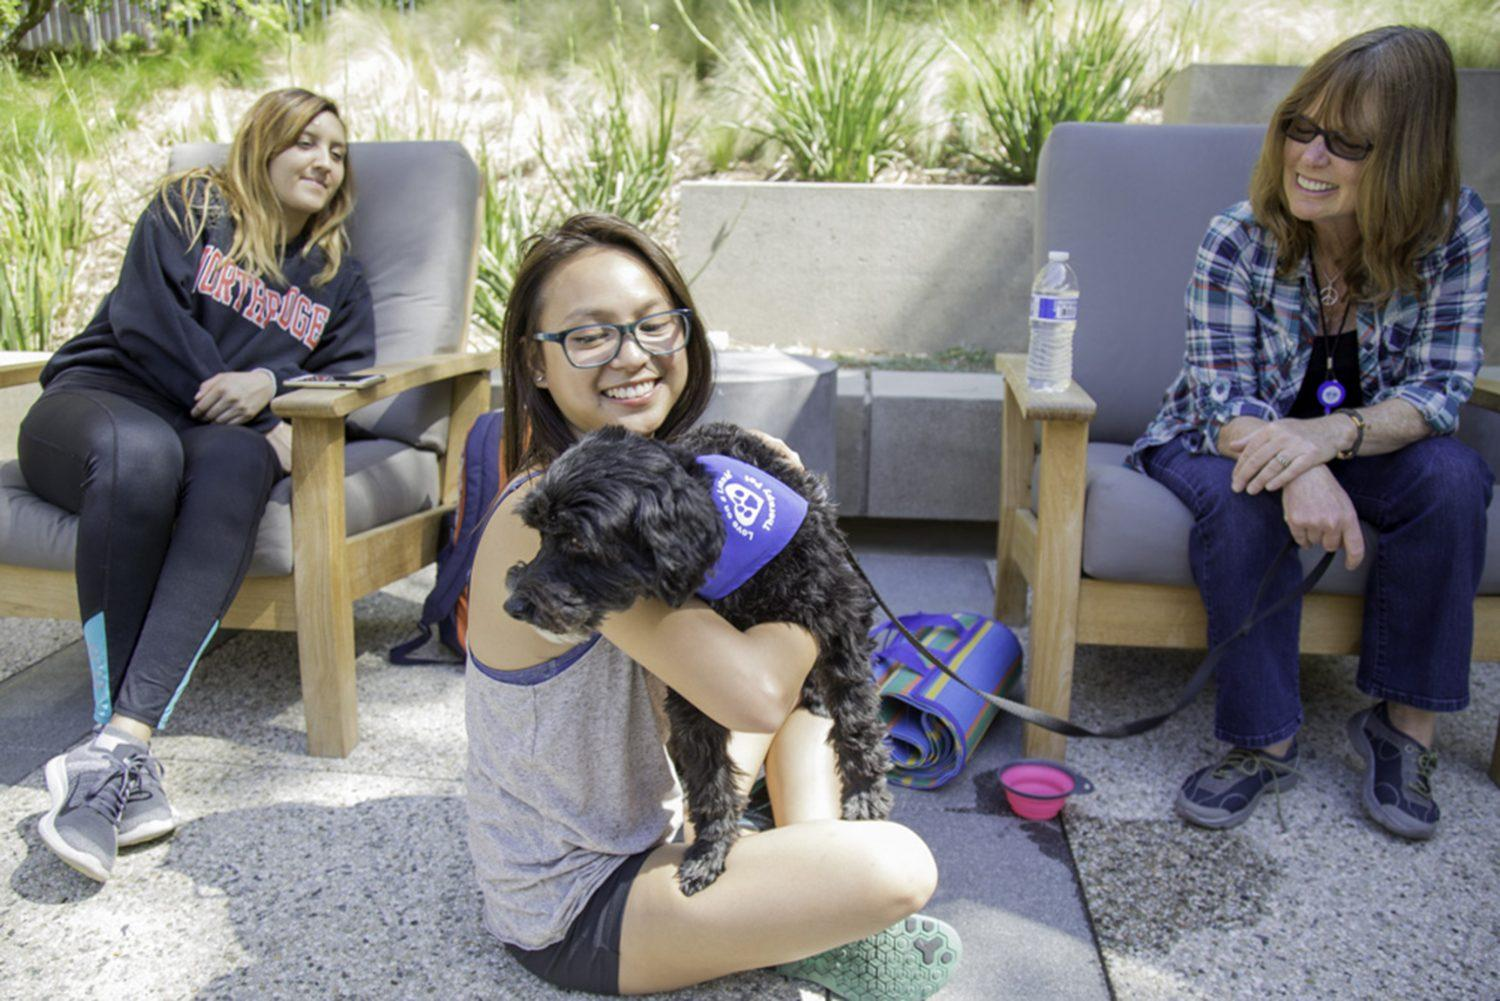 Senior+psychology+major+Nika+Lao+pets+a+therapy+dog+at+The+Oasis+Wellness+Center%2C+Tuesday+afternoon.